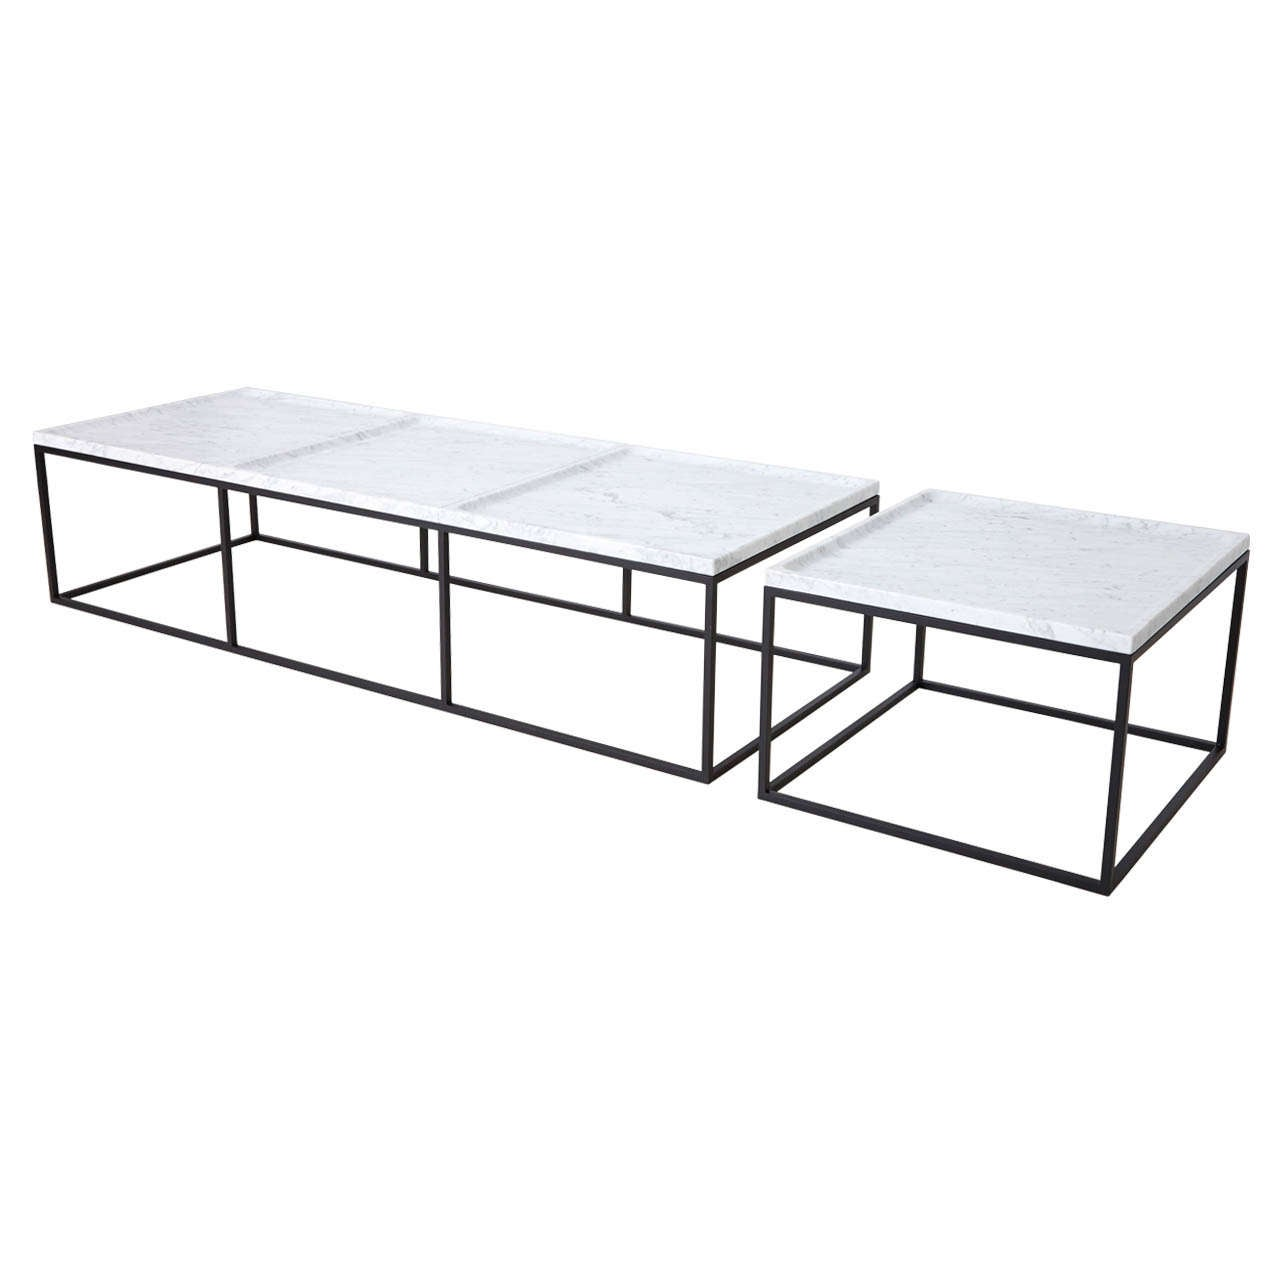 White Marble Coffee Table Set: Coffee Tables In White Carrara Marble At 1stdibs